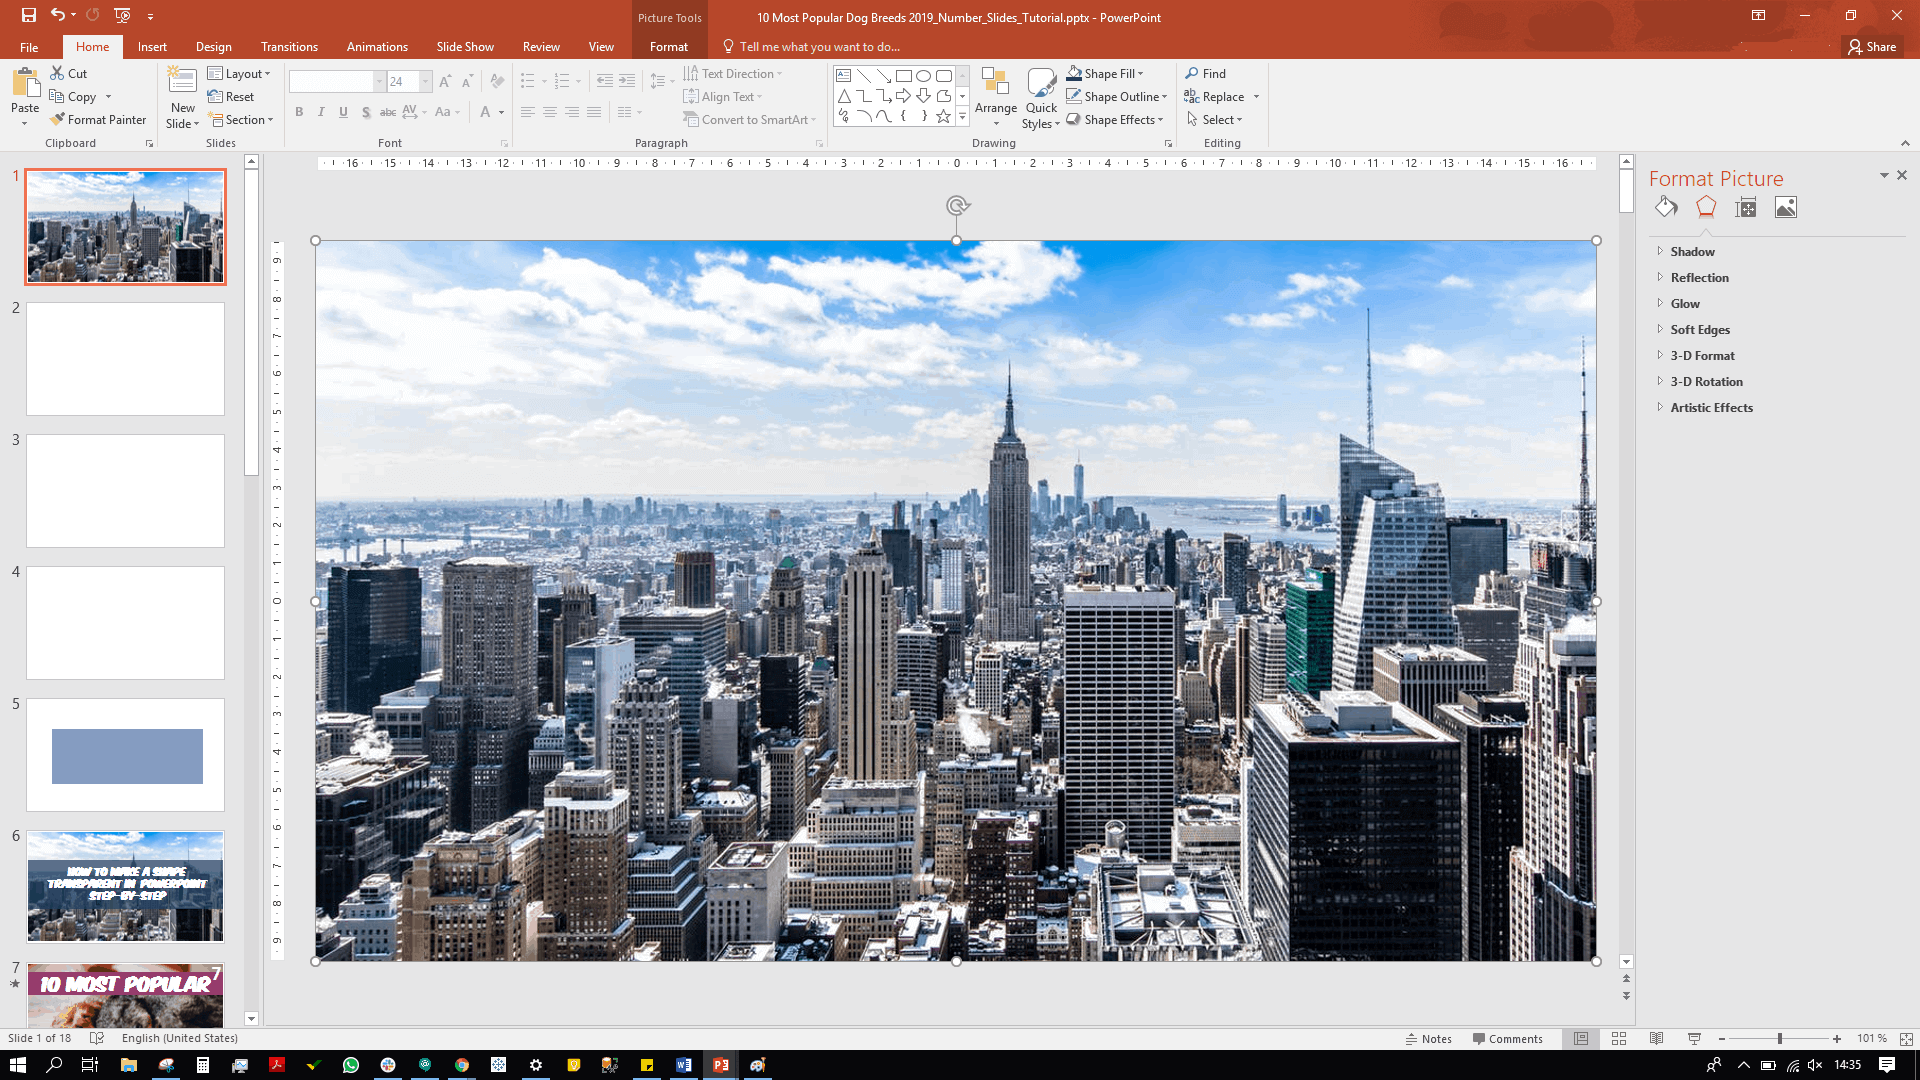 Image of New York City used as the background image - yourslidebuddy.com